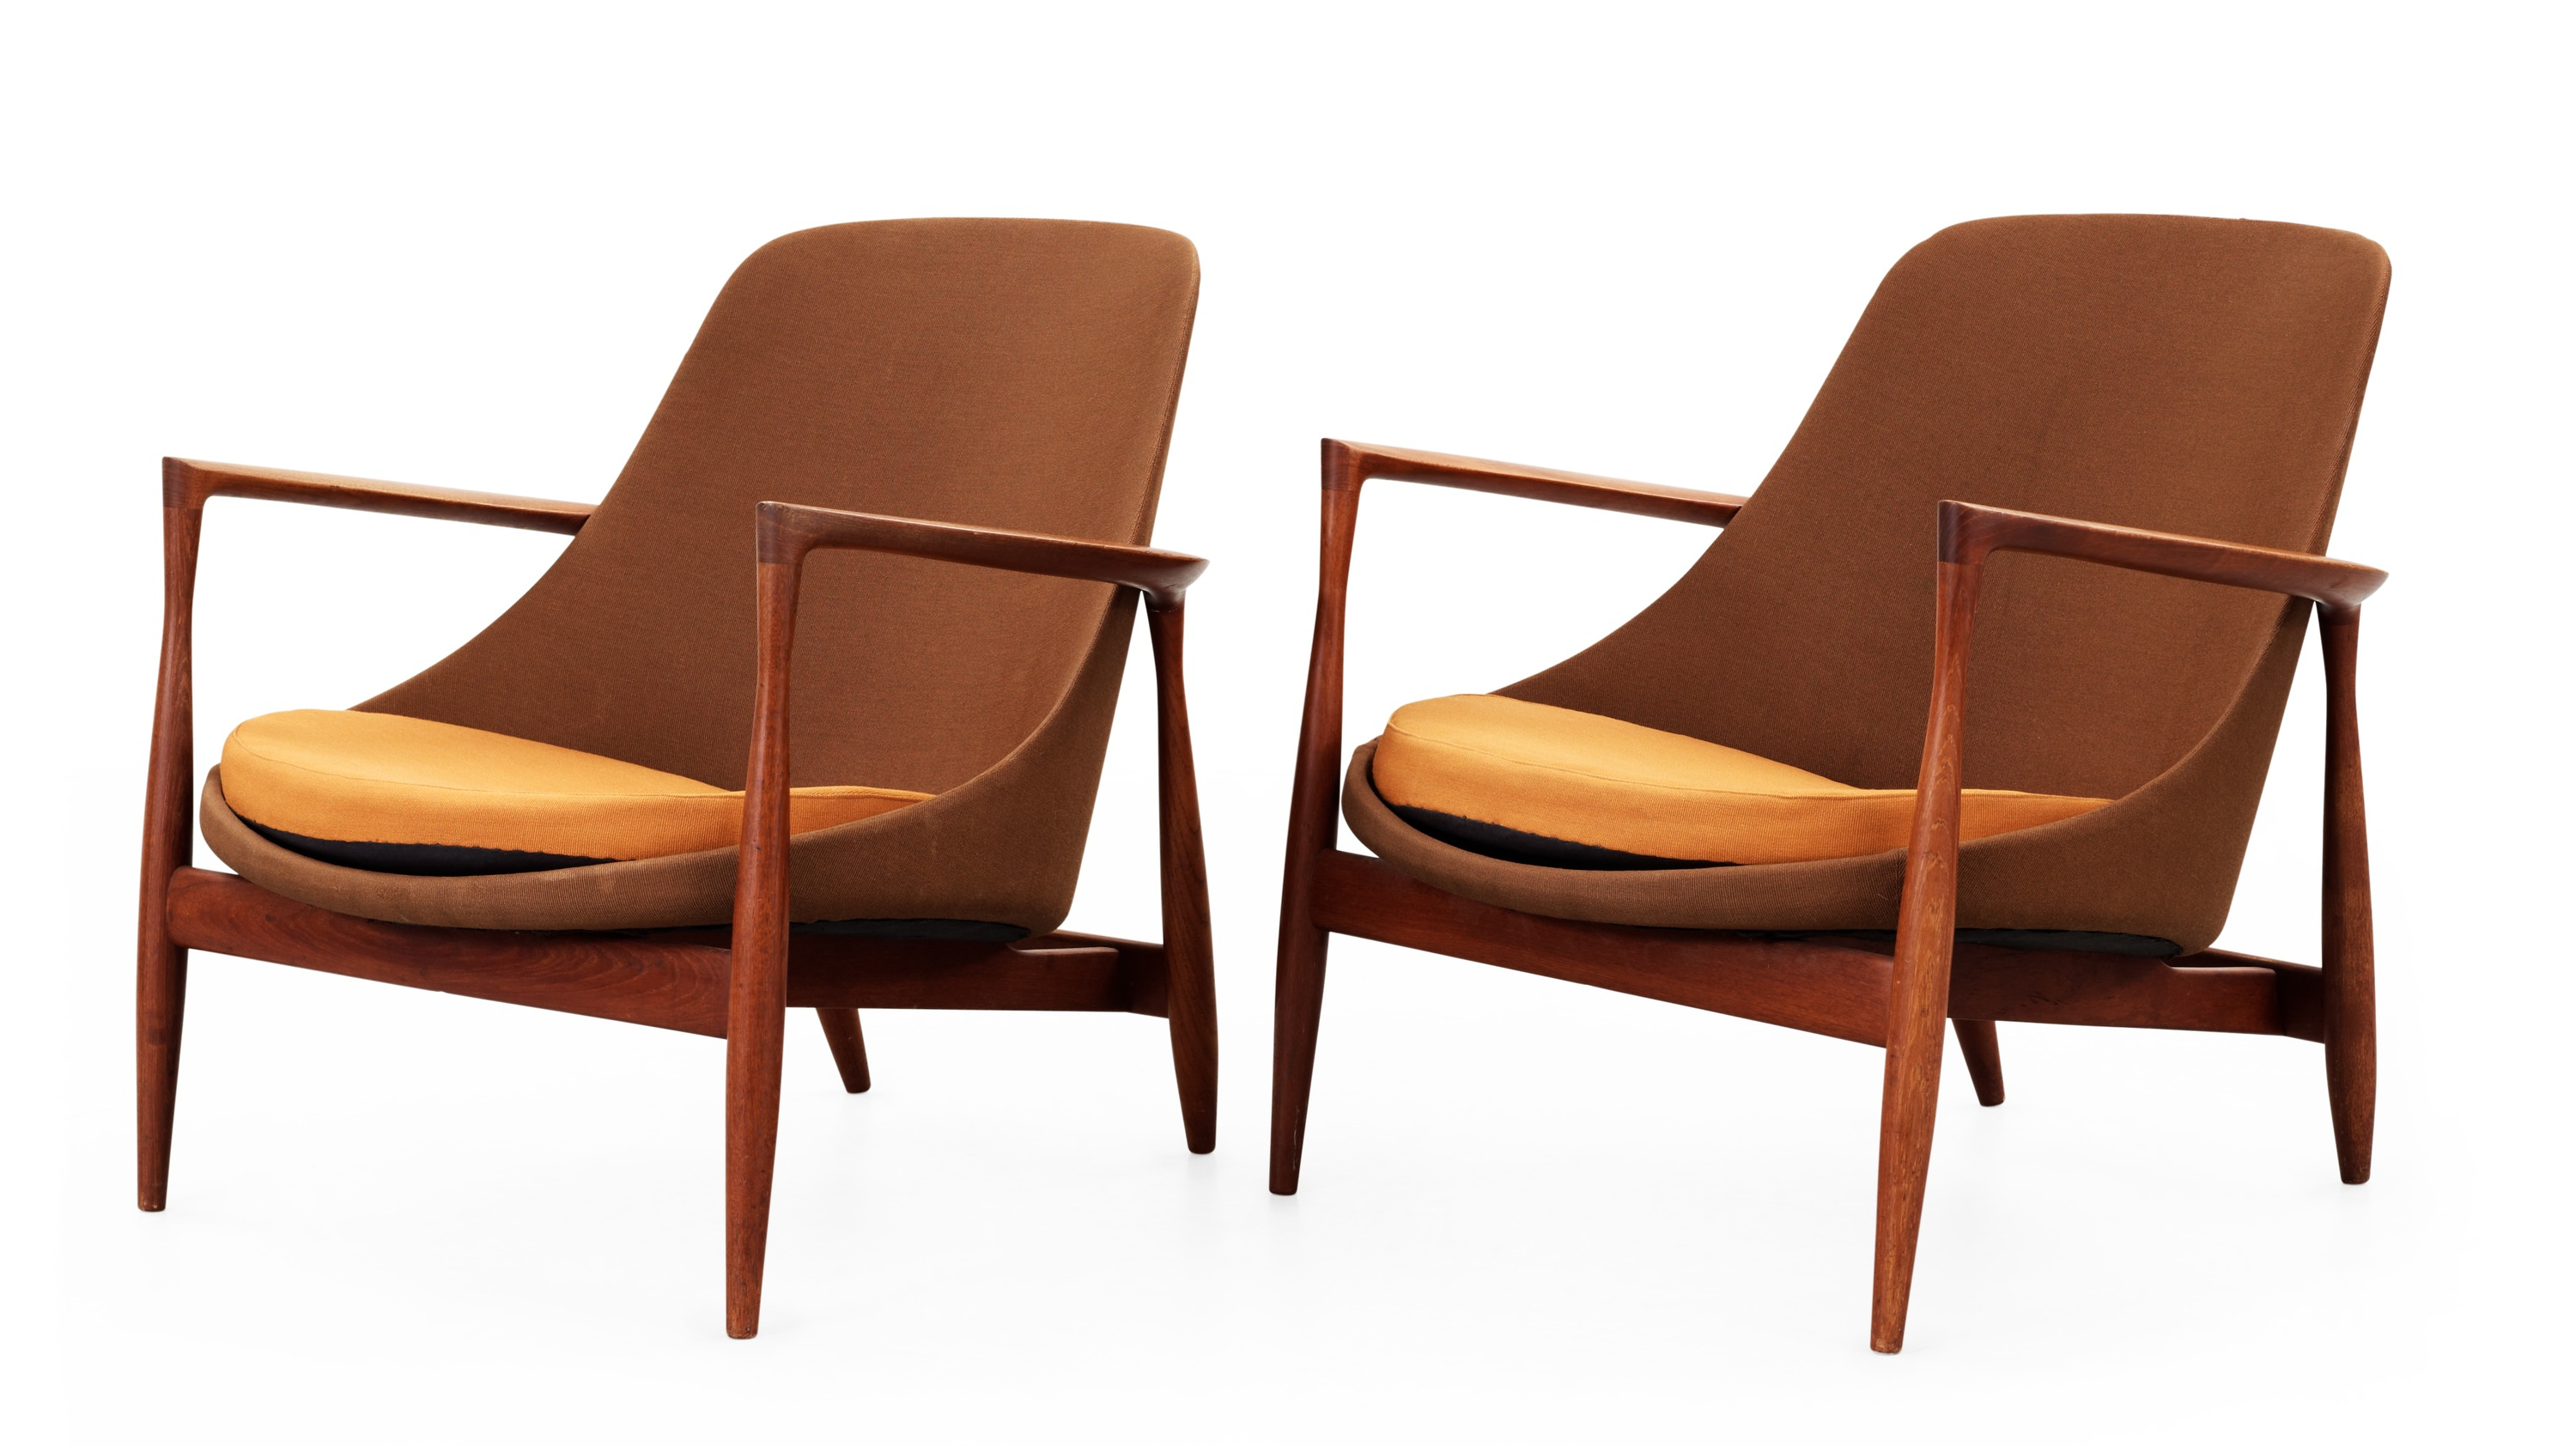 Chairs from the 60s on pinterest chairs mid century and for Designer chairs from the 60s